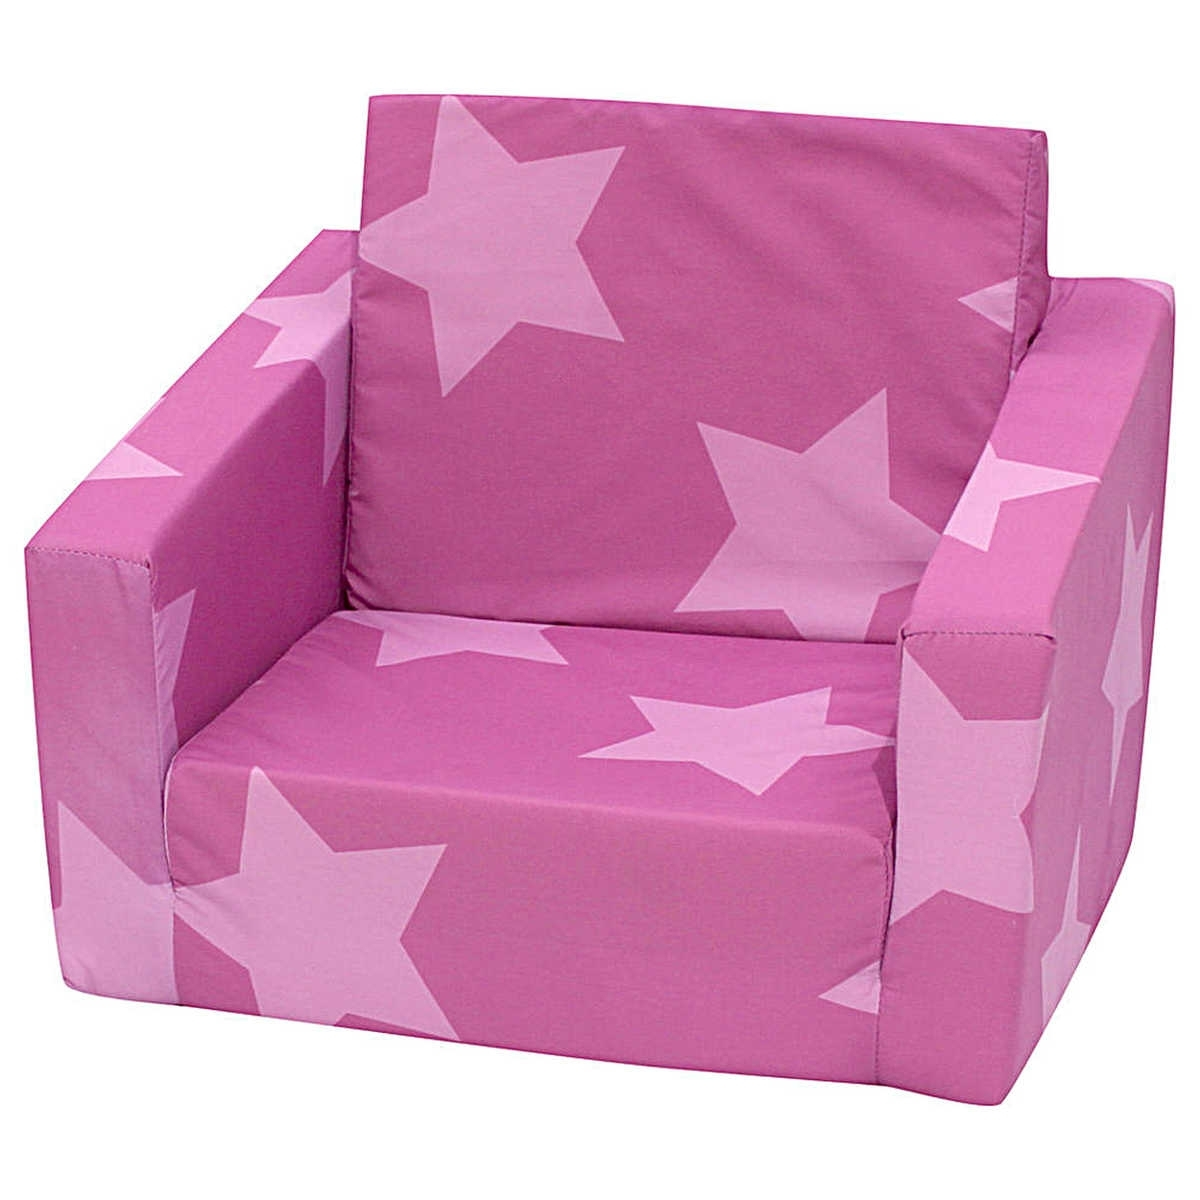 Flip Out Sofa Kids – Home And Textiles Regarding Popular Flip Out Sofa For Kids (View 10 of 20)